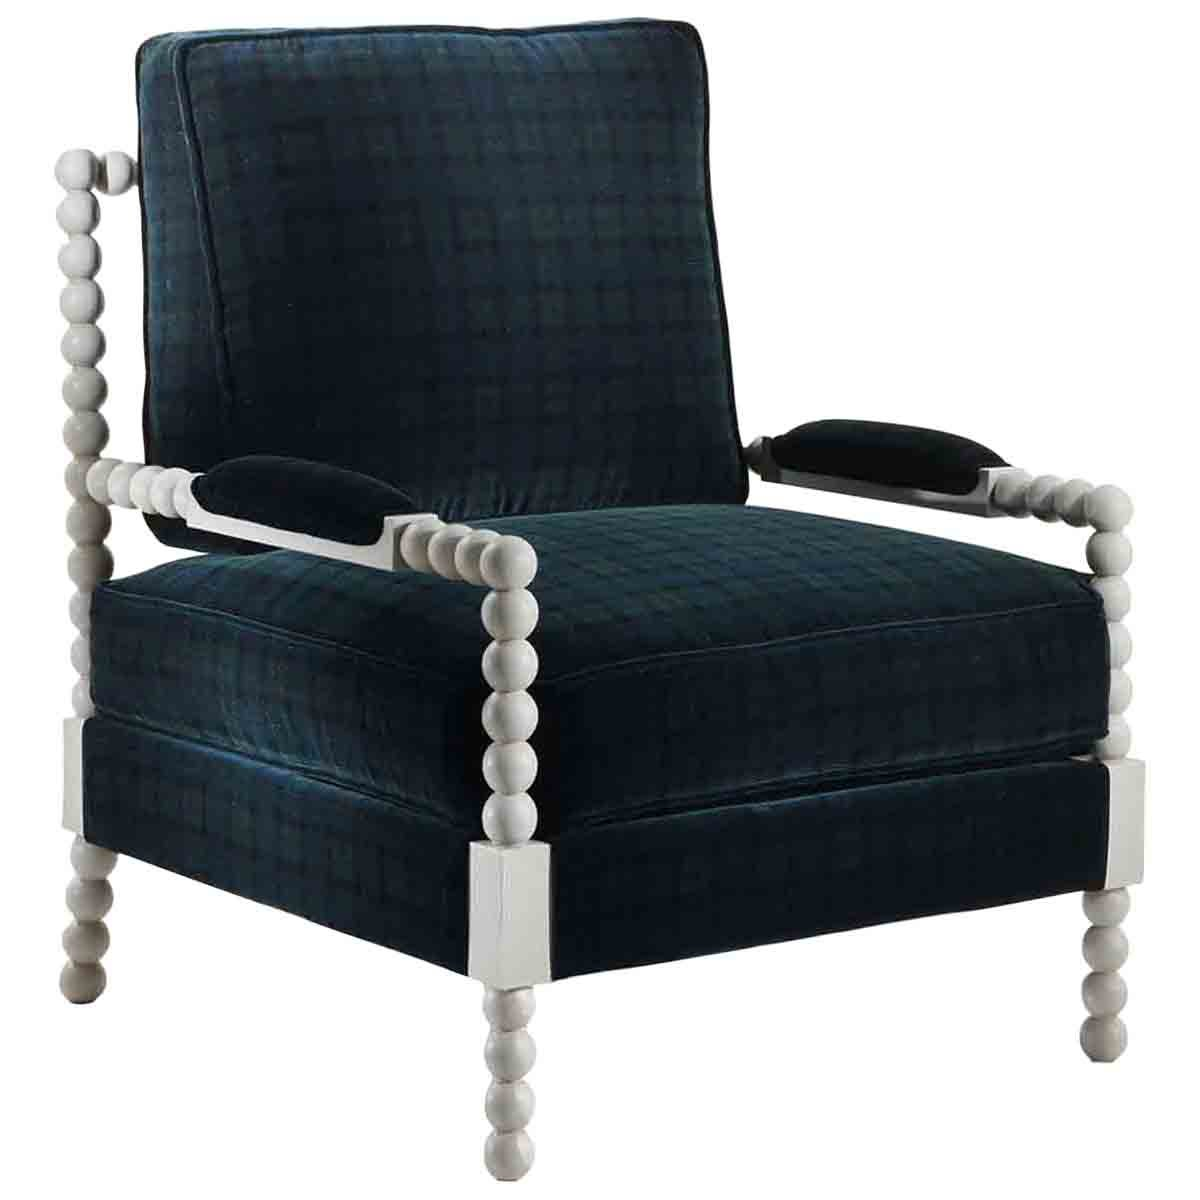 Margaritas Lounge Chair by Fratelli Boffi